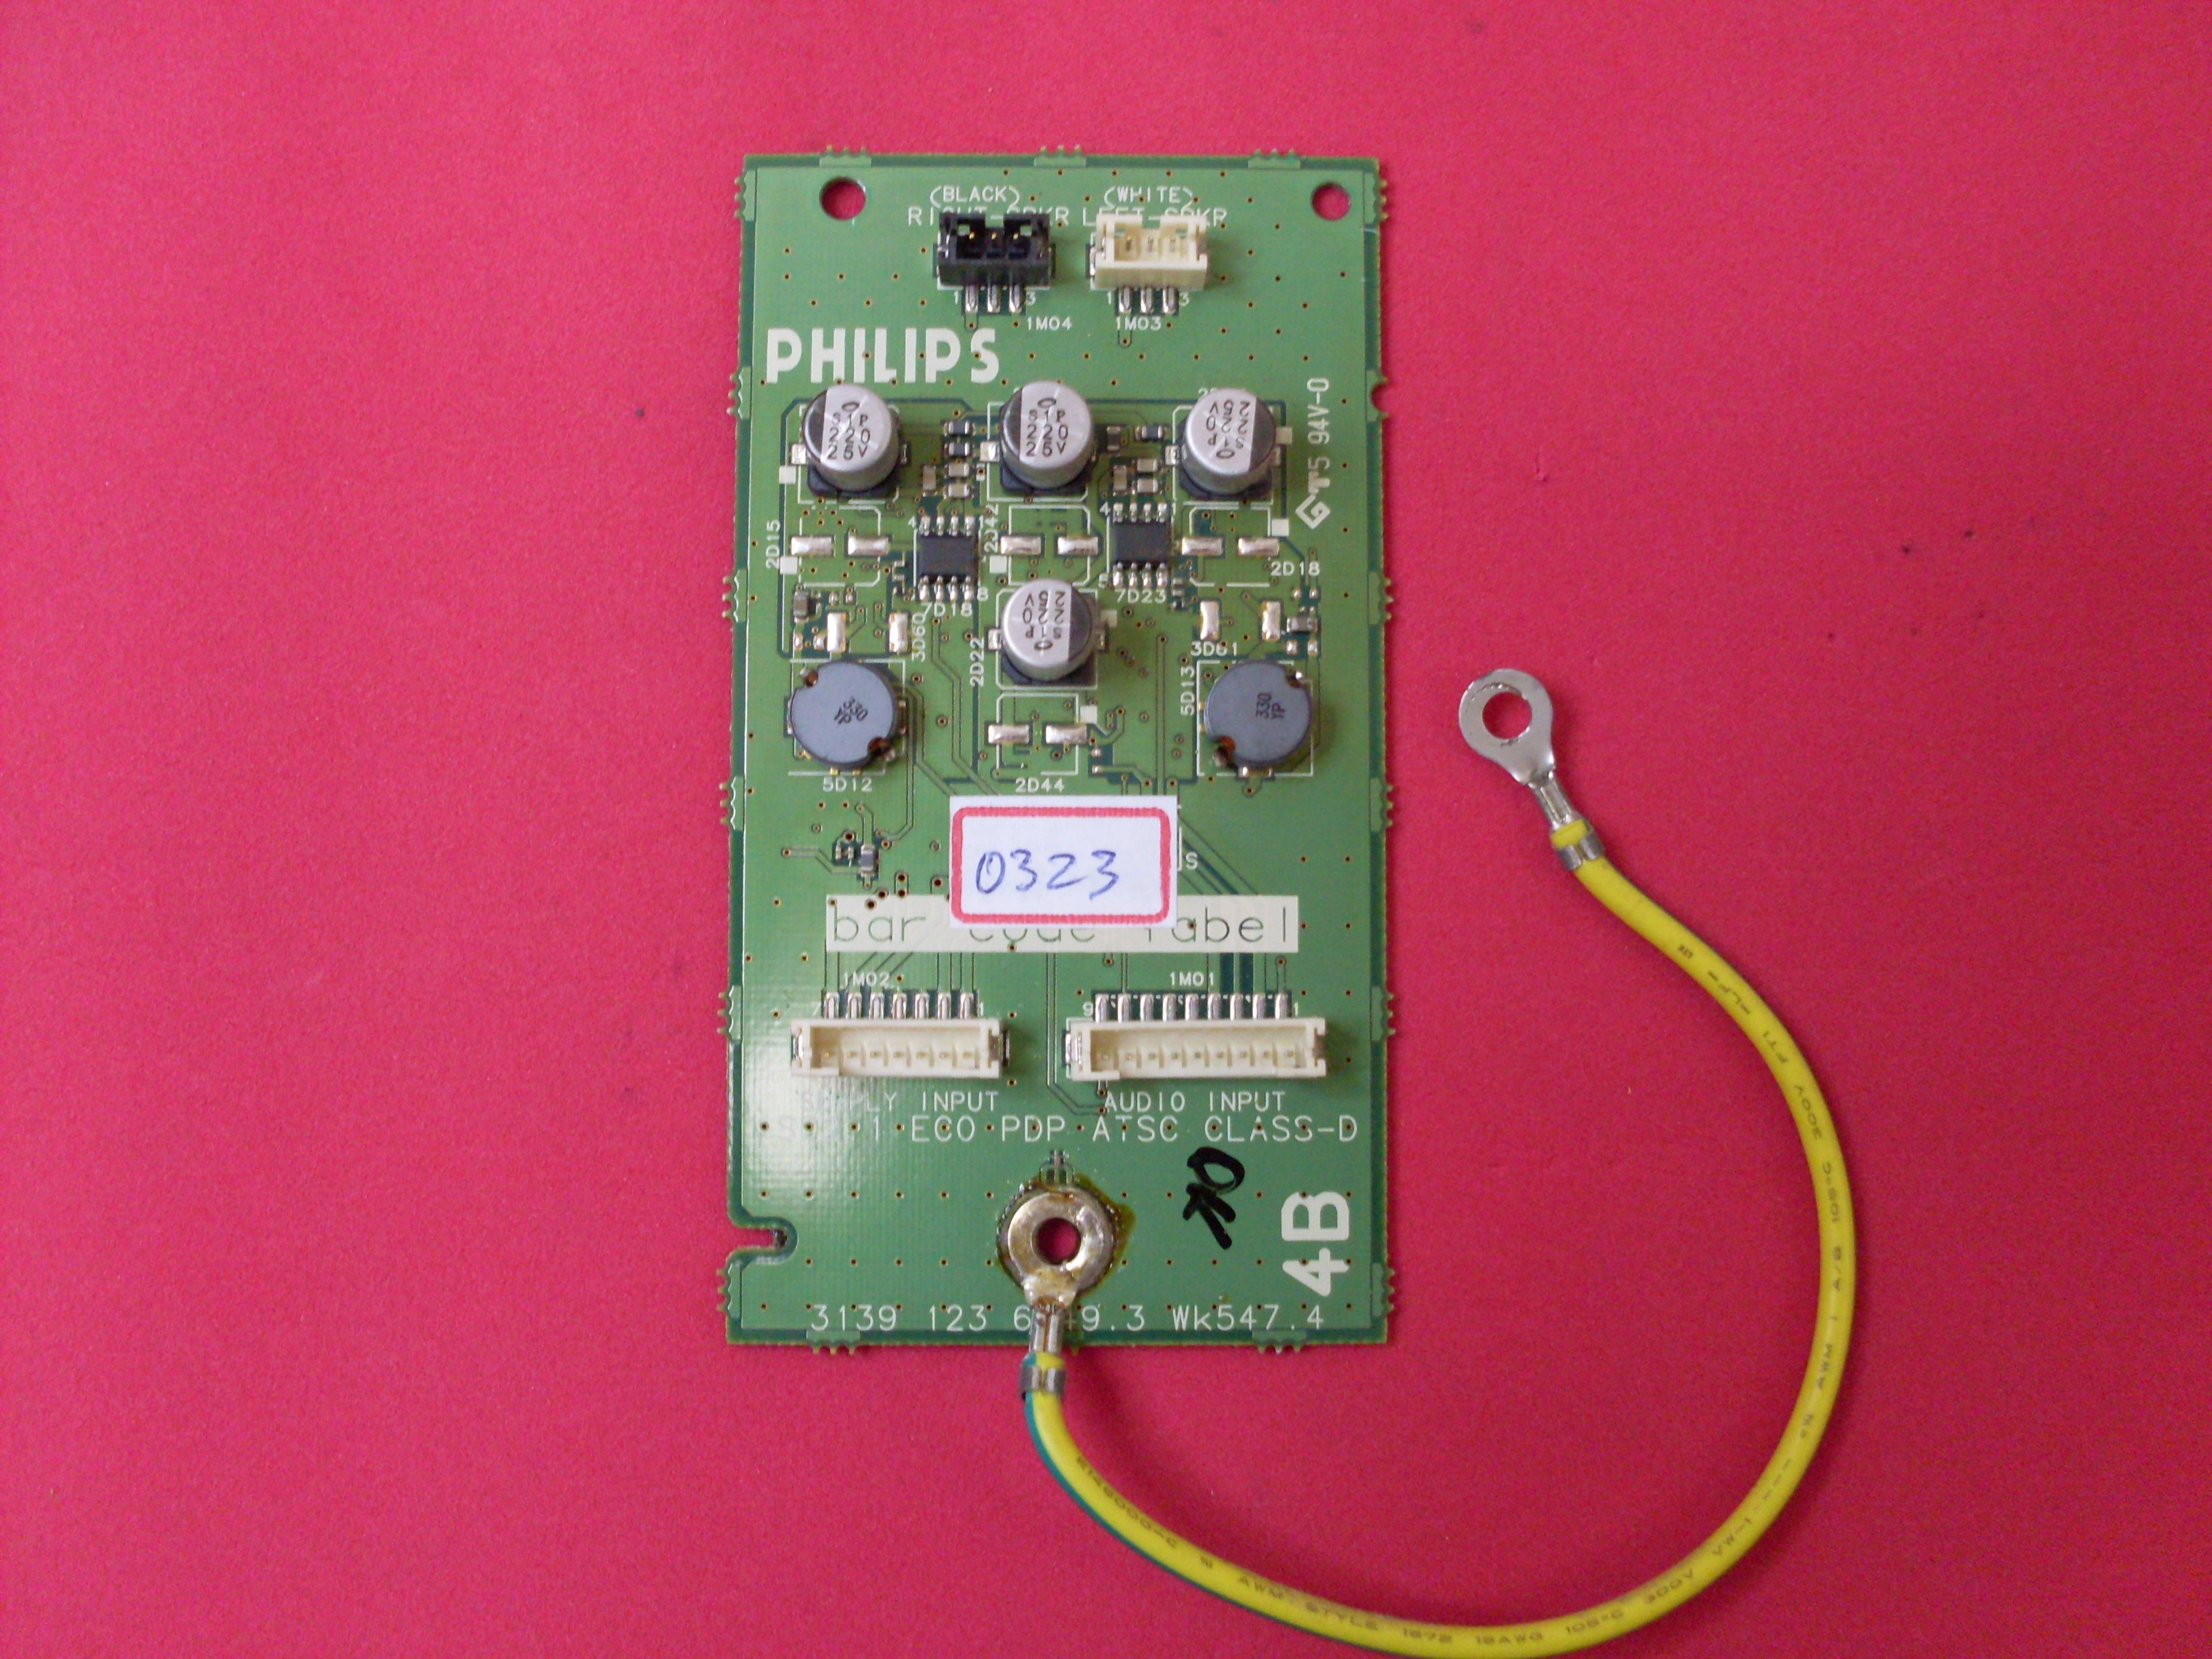 PLACA DE AUDIO 3139 123 6149.3 PLASMA PHILIPS 42PF7321